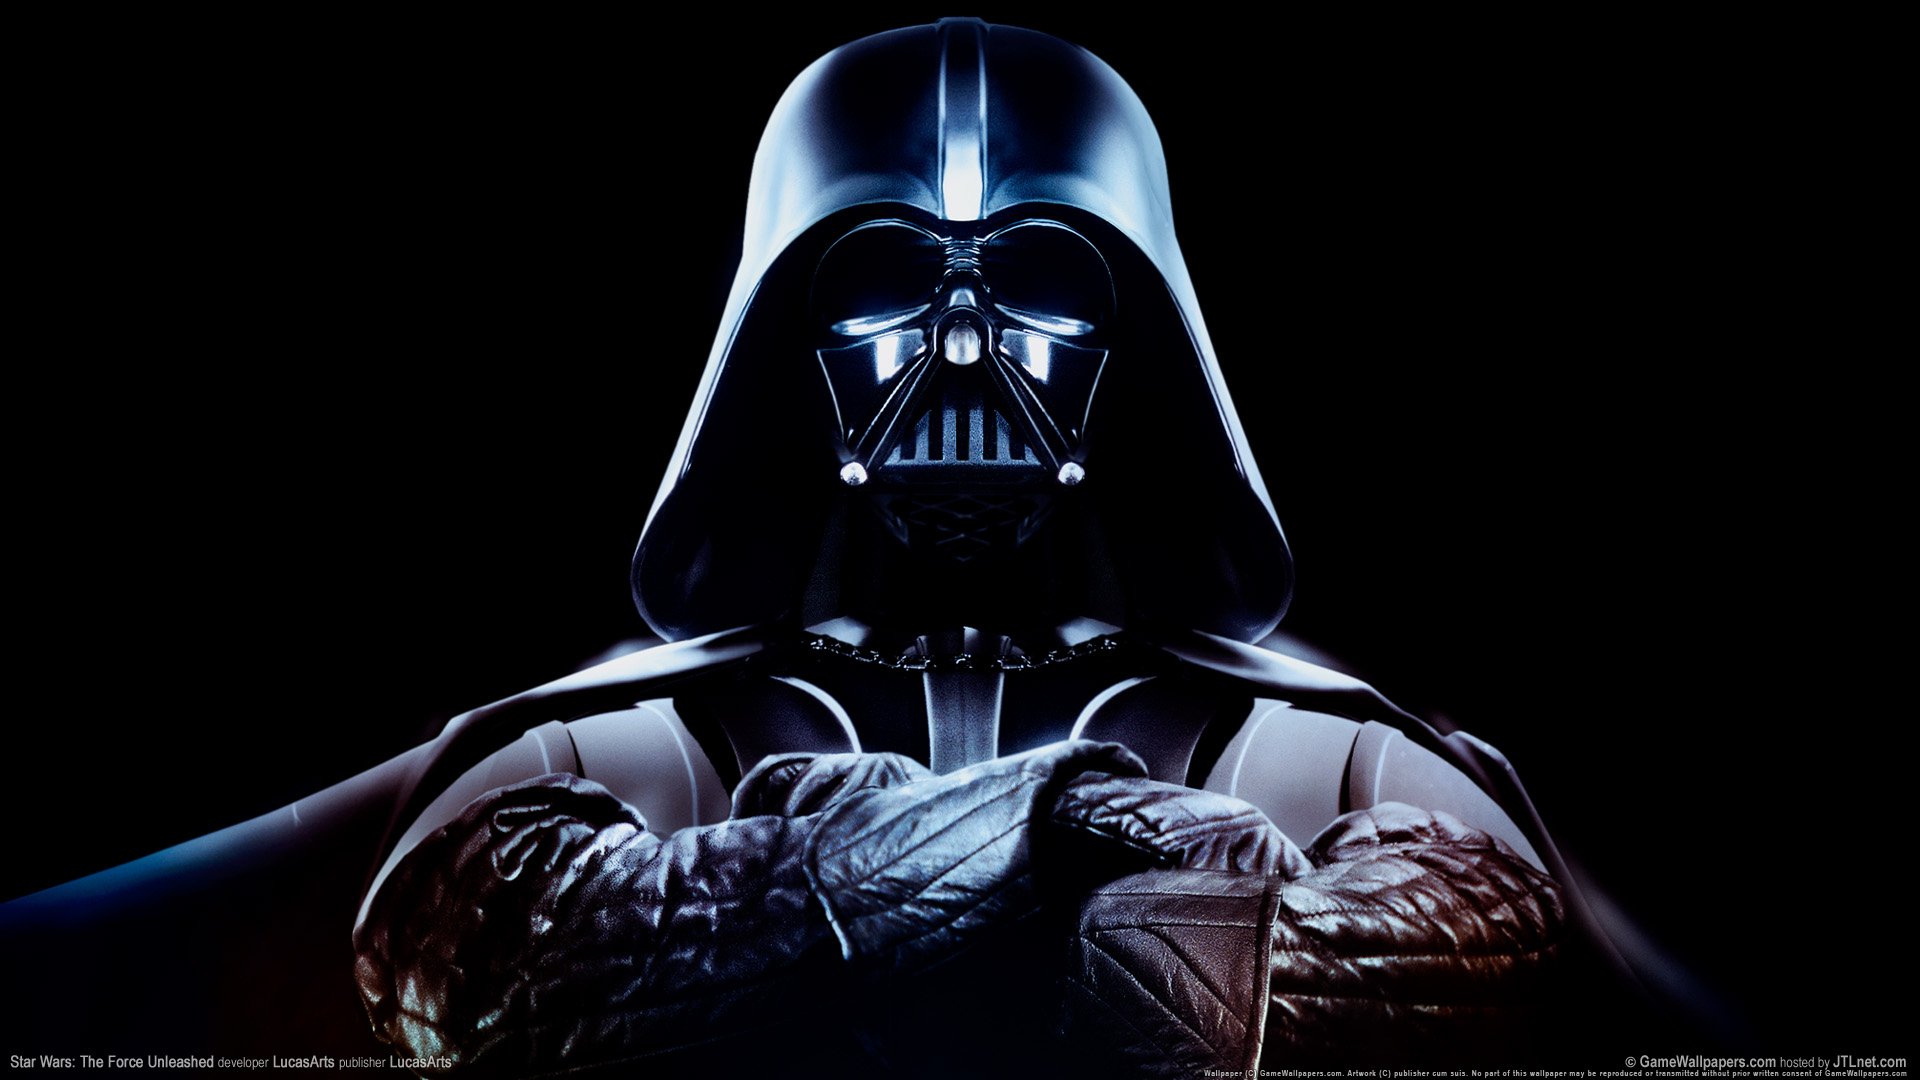 Star Wars Theme Song Movie Theme Songs TV Soundtracks 1920x1080